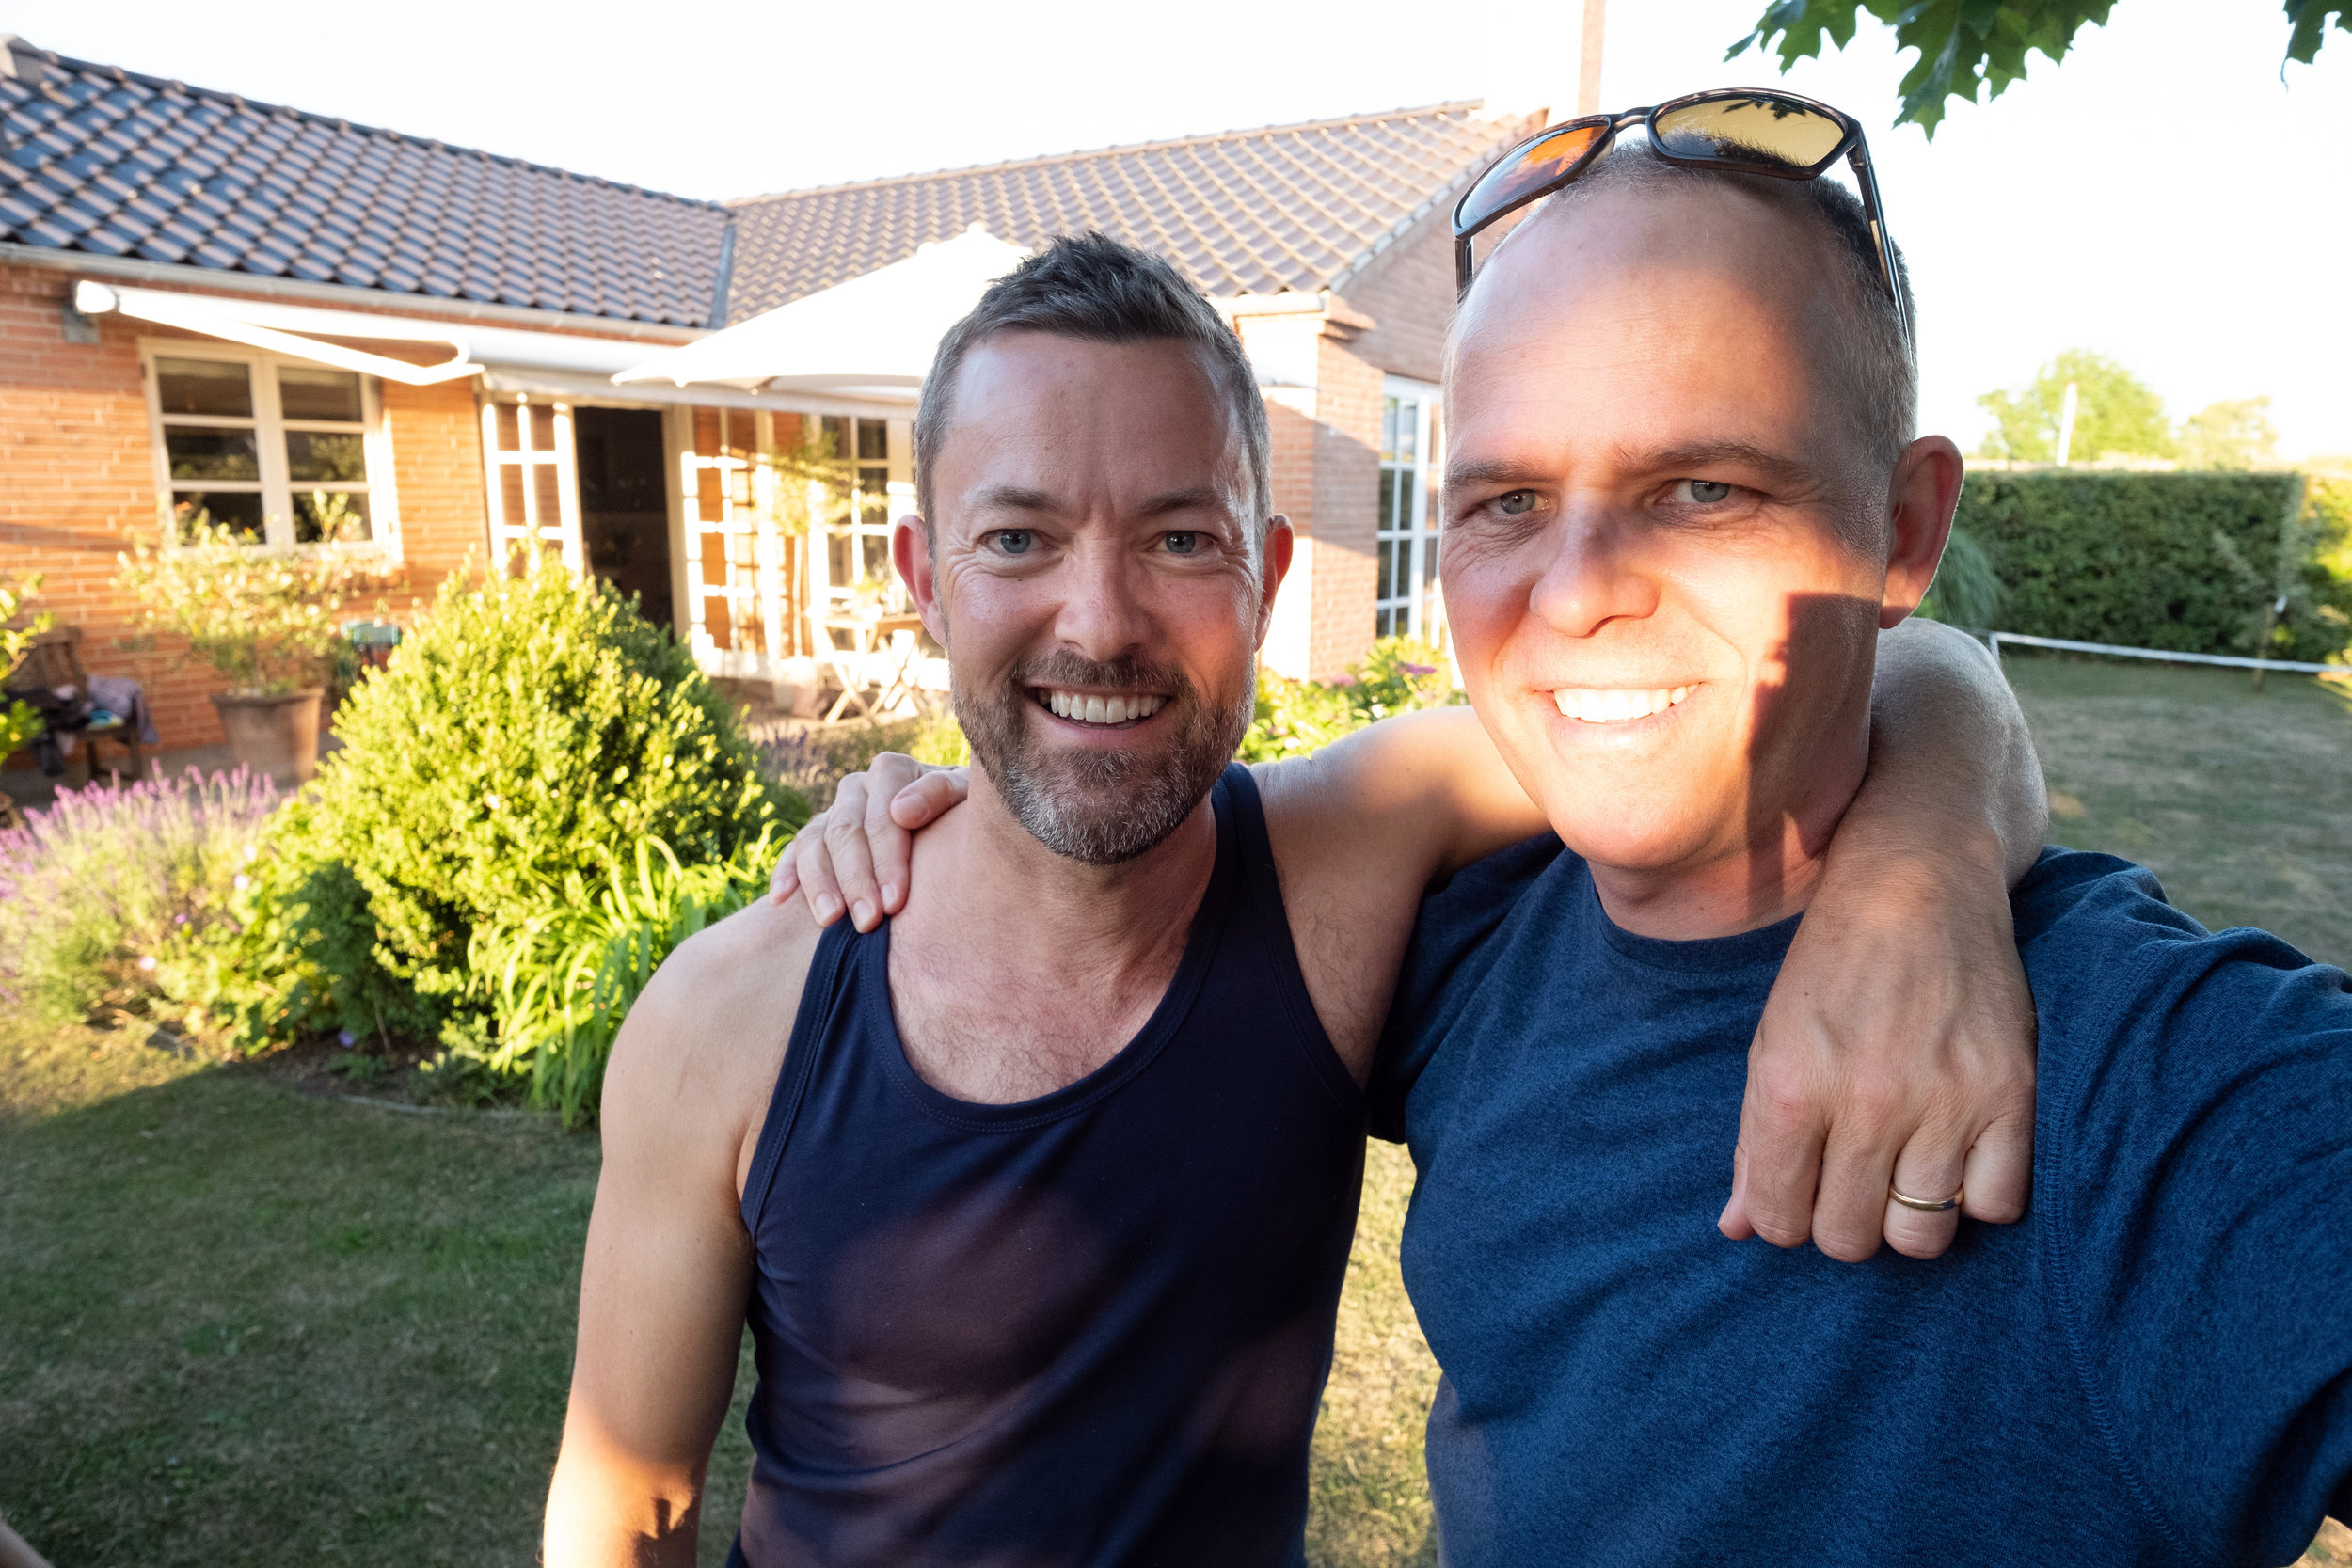 Selfie time with my cousin Uffe